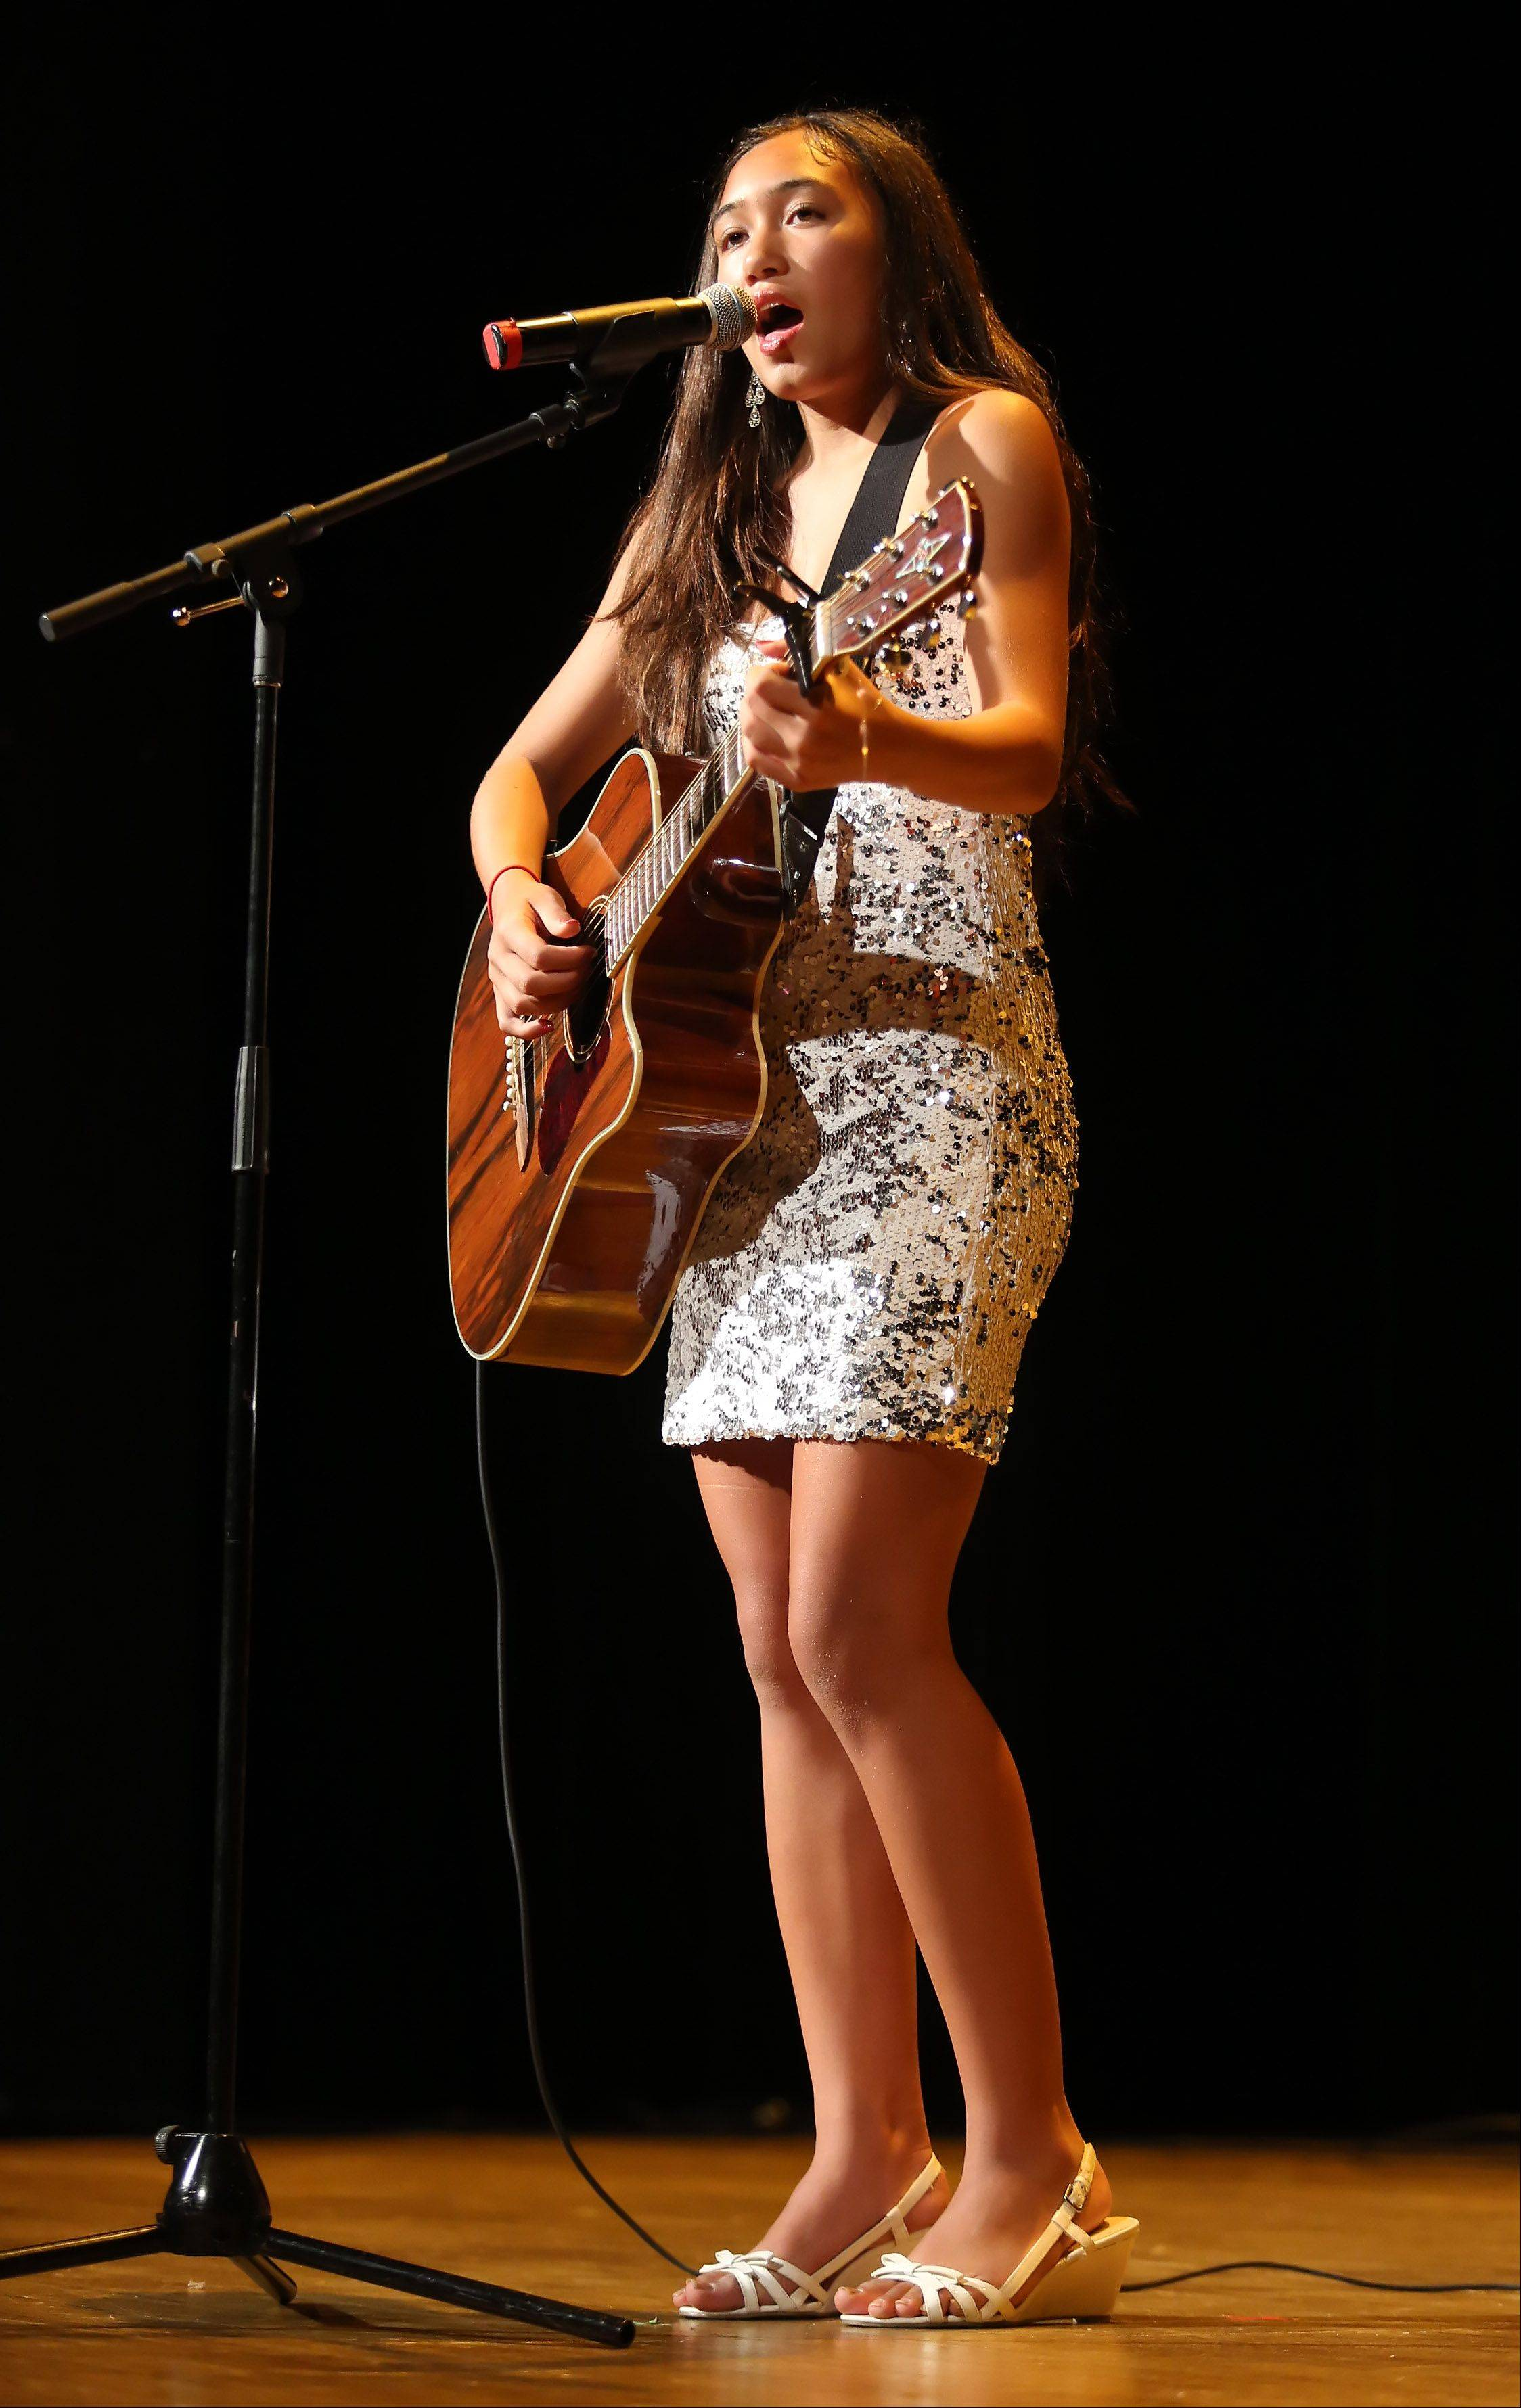 Alexis Mai Nguyen of Pingree Grove plays the guitar Sunday during the second round of performances by finalists of the Suburban Chicago's Got Talent competition at the Metropolis Performing Arts Centre in Arlington Heights. The summer long talent contest is presented by the Daily Herald and sponsored by the Arlington Heights Chamber of Commerce.